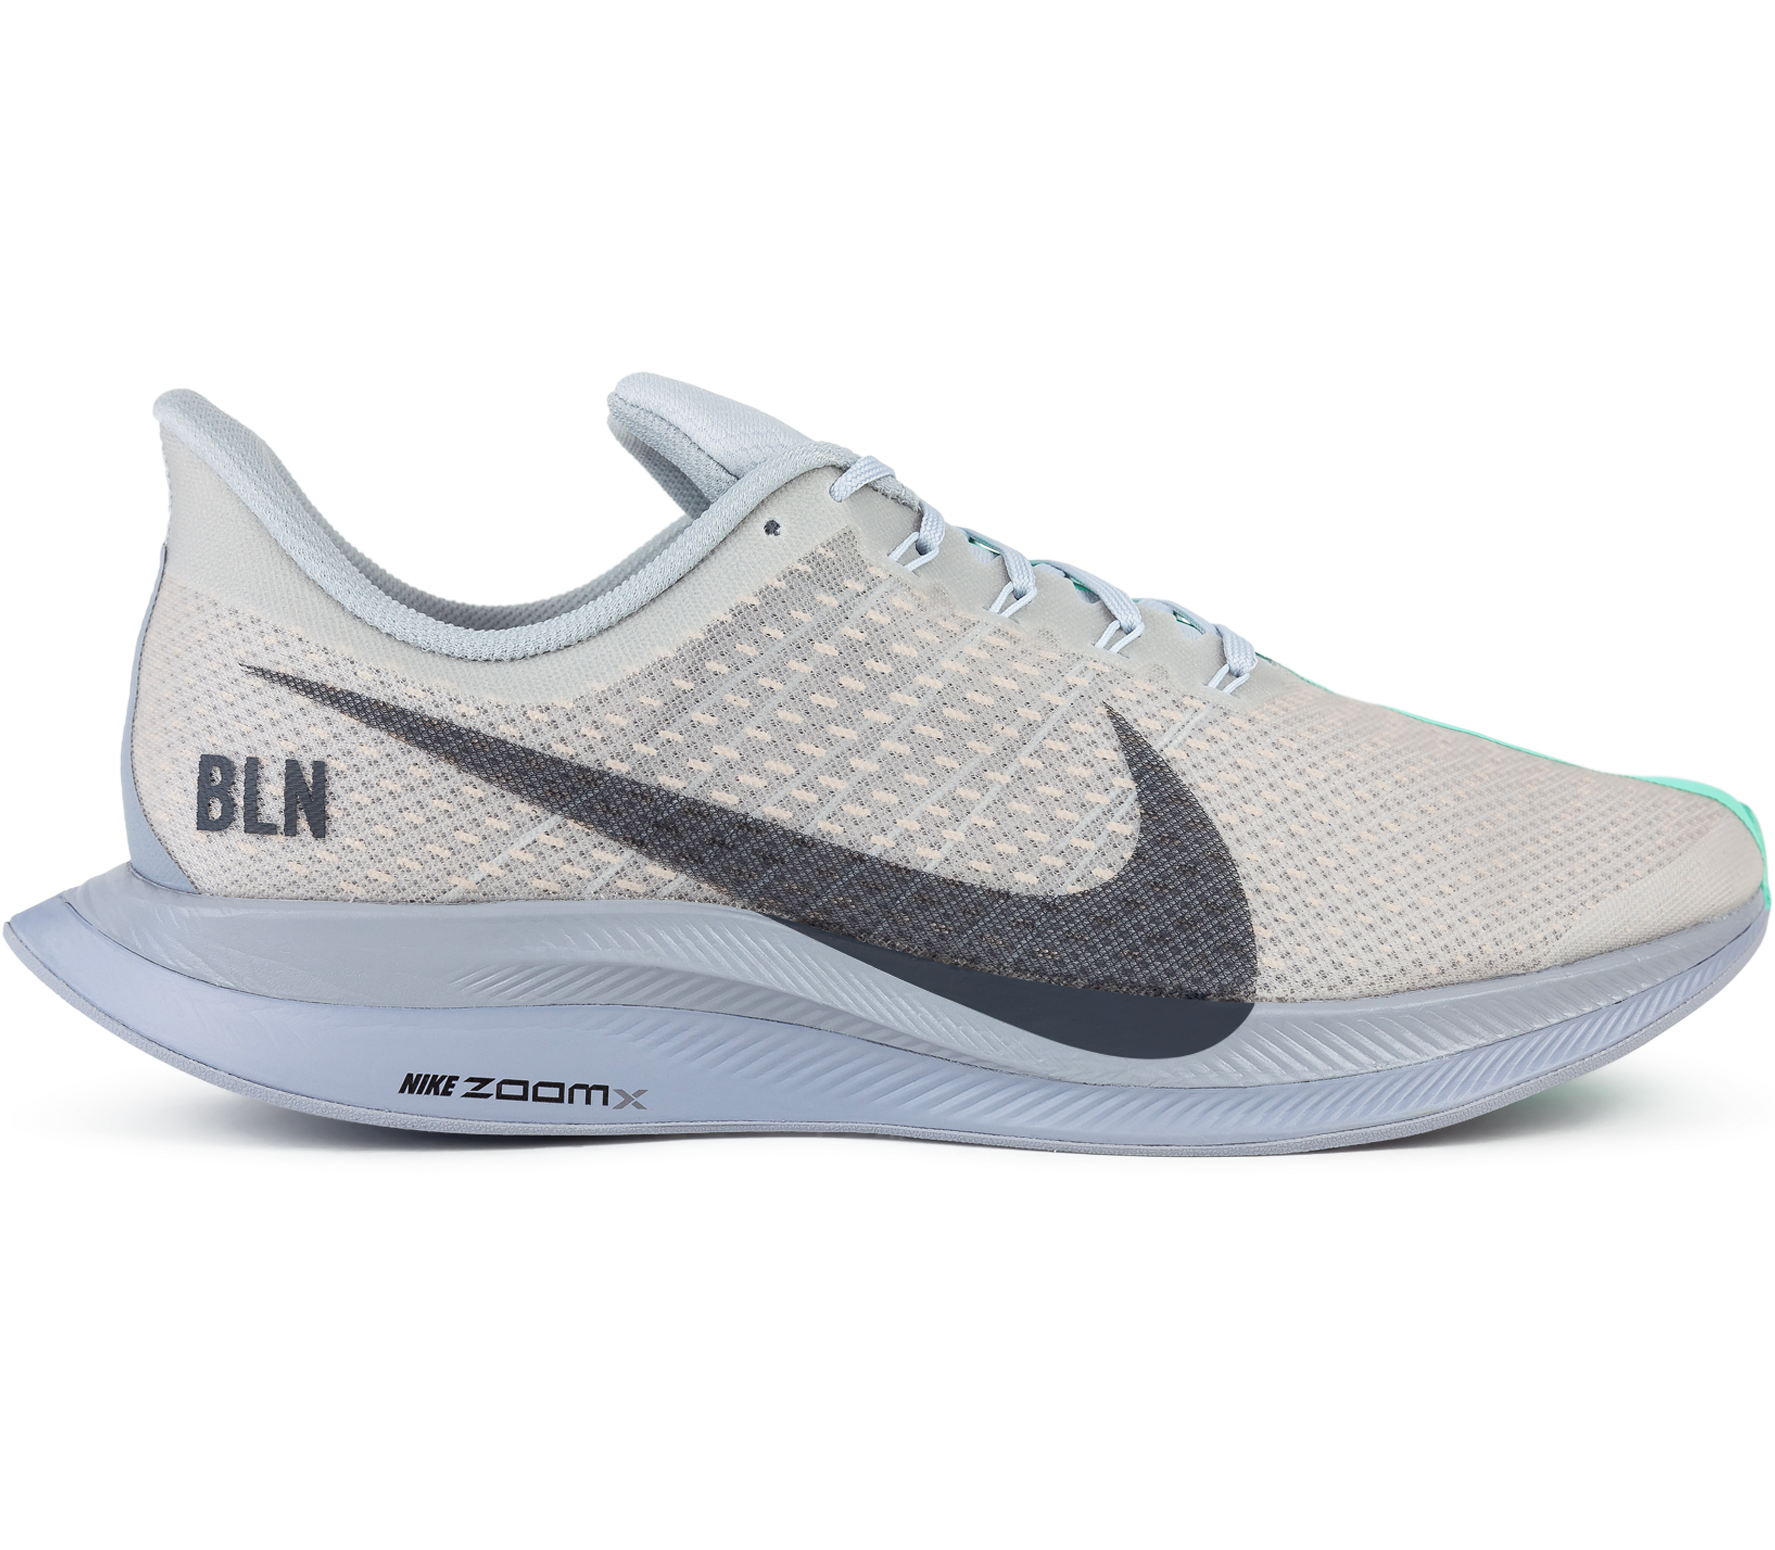 the latest ee2d9 65ae7 Nike - Zoom Pegasus Turbo BERLIN zapatillas de running para hombre (gris)